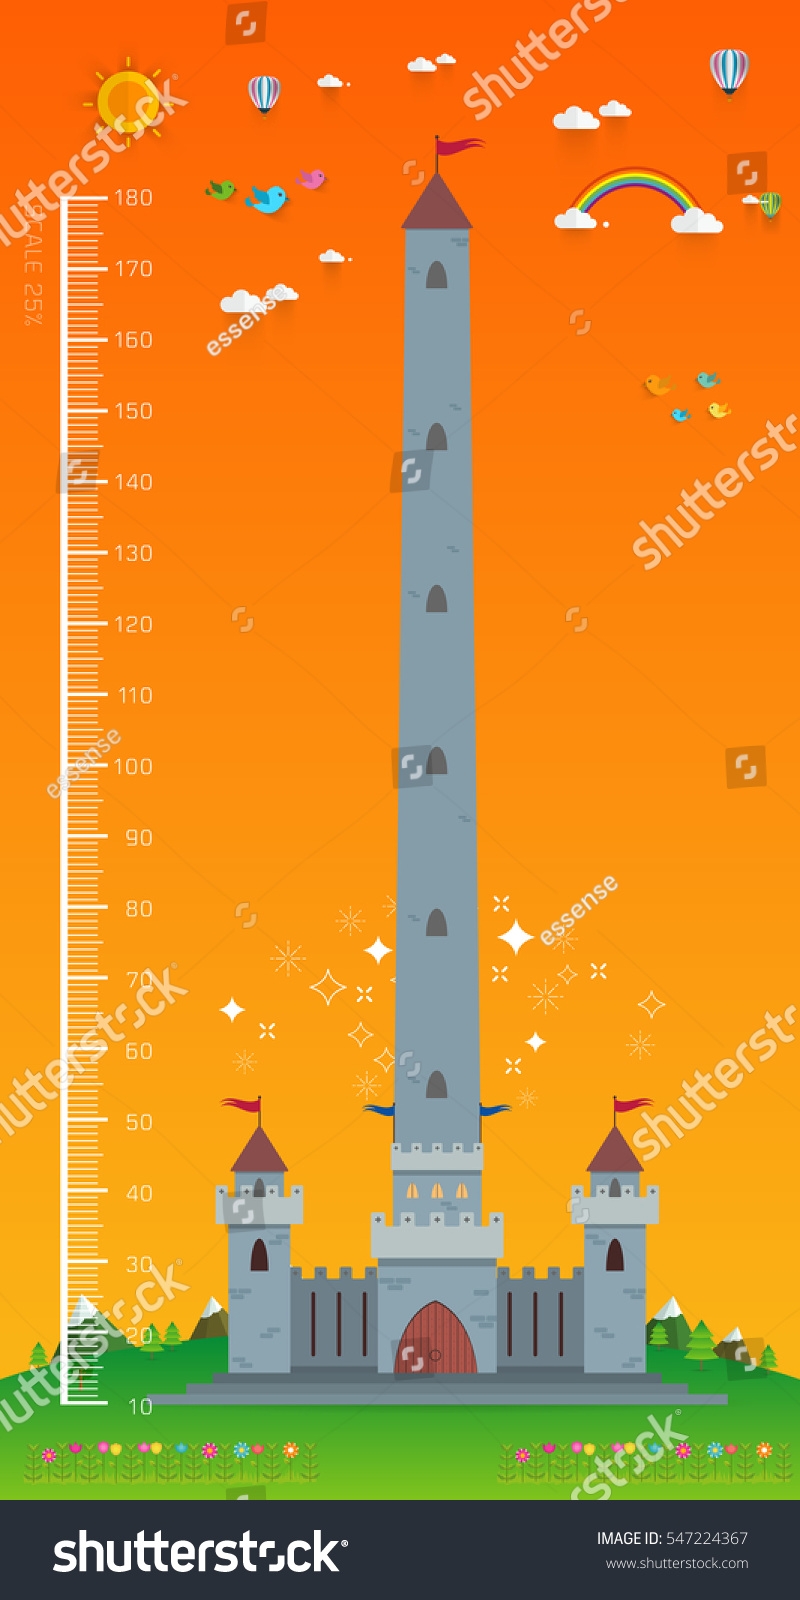 Background image 100 height - Background Of Children Height Meter Meter Wall Castle Princesses Meter From 10